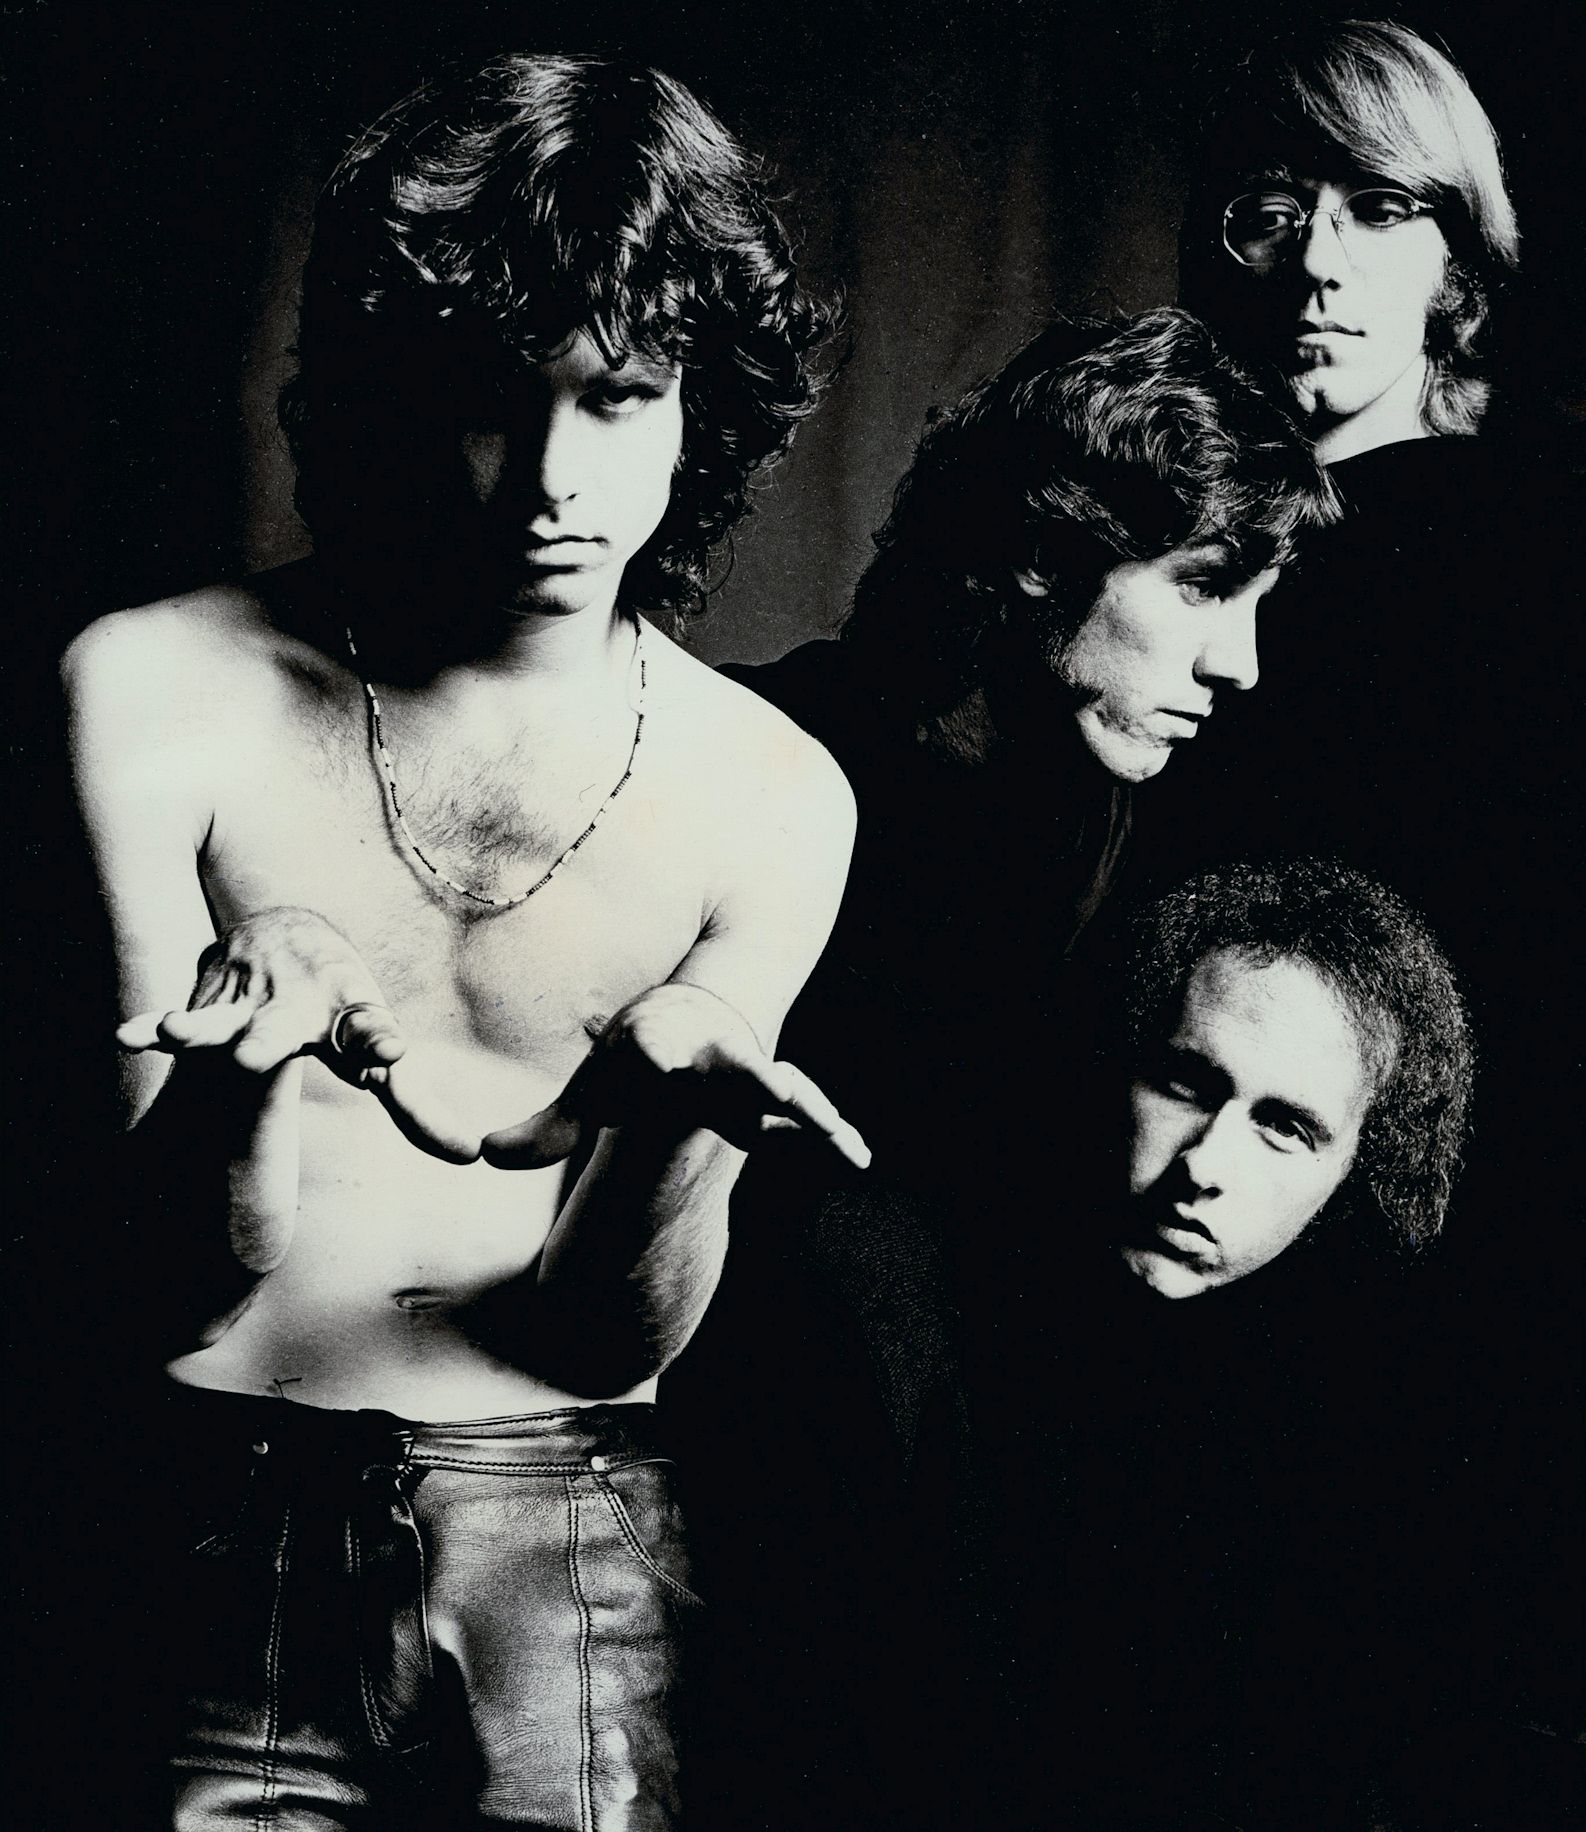 Jim morrison riders on the storm lyrics